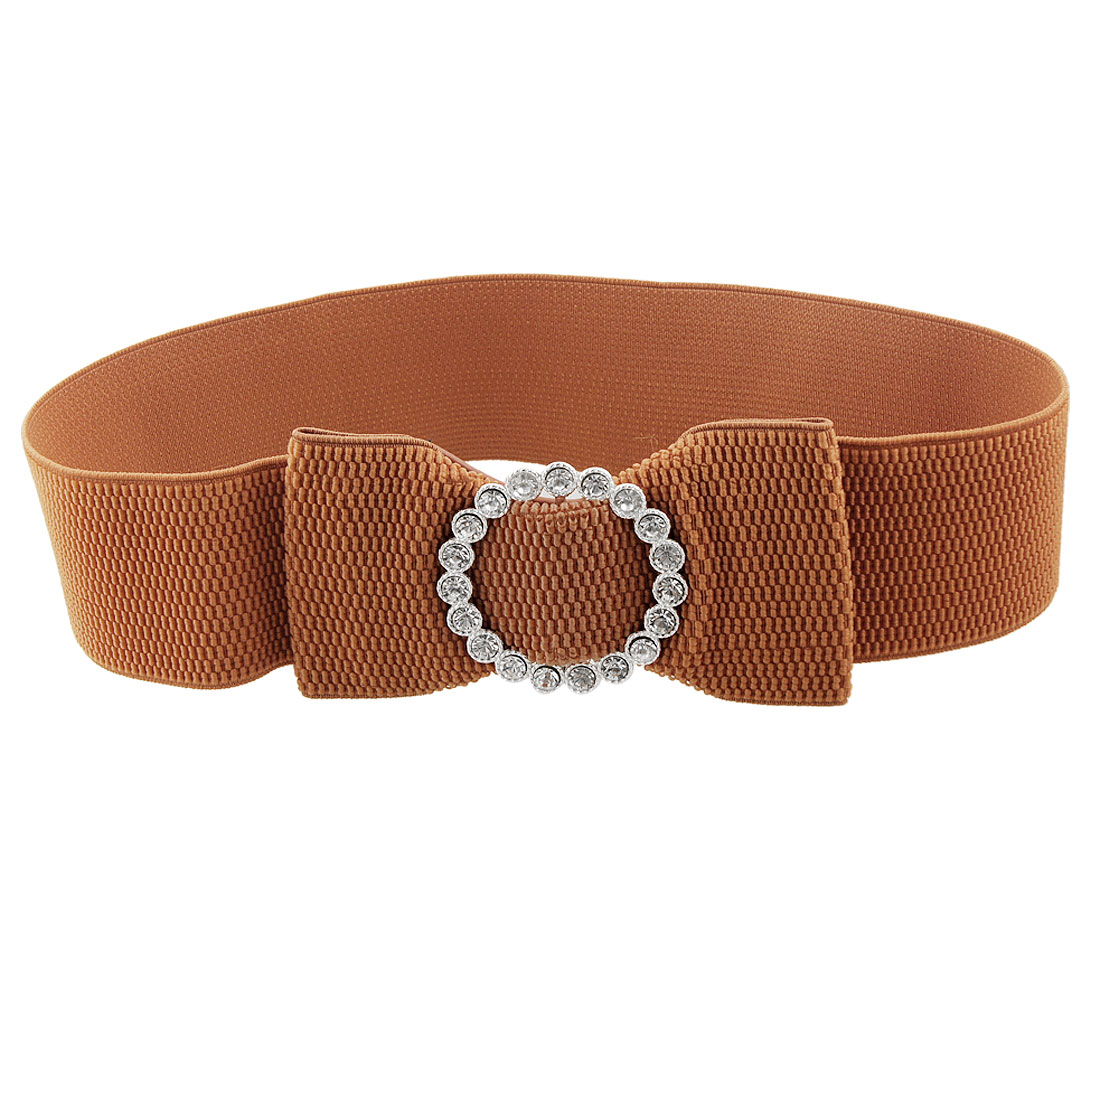 "Bowknot Decor 2.4"" Width Brown Elastic Waist Belt for Ladies"